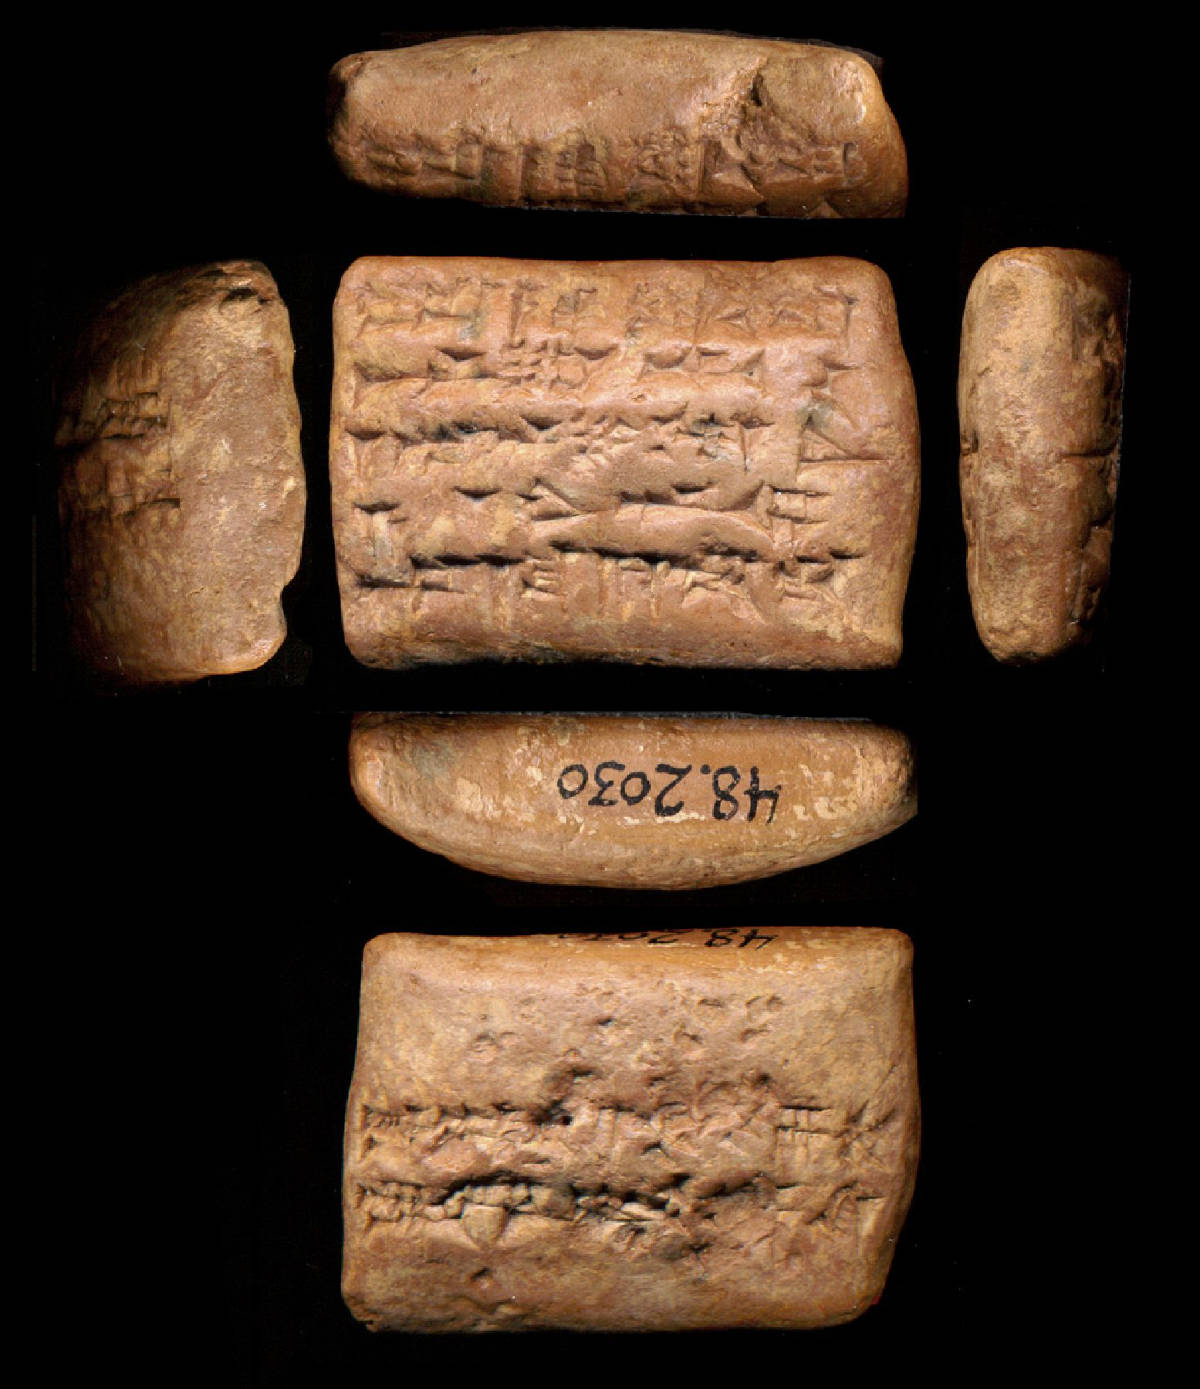 A clay tablet with cuneiform writing